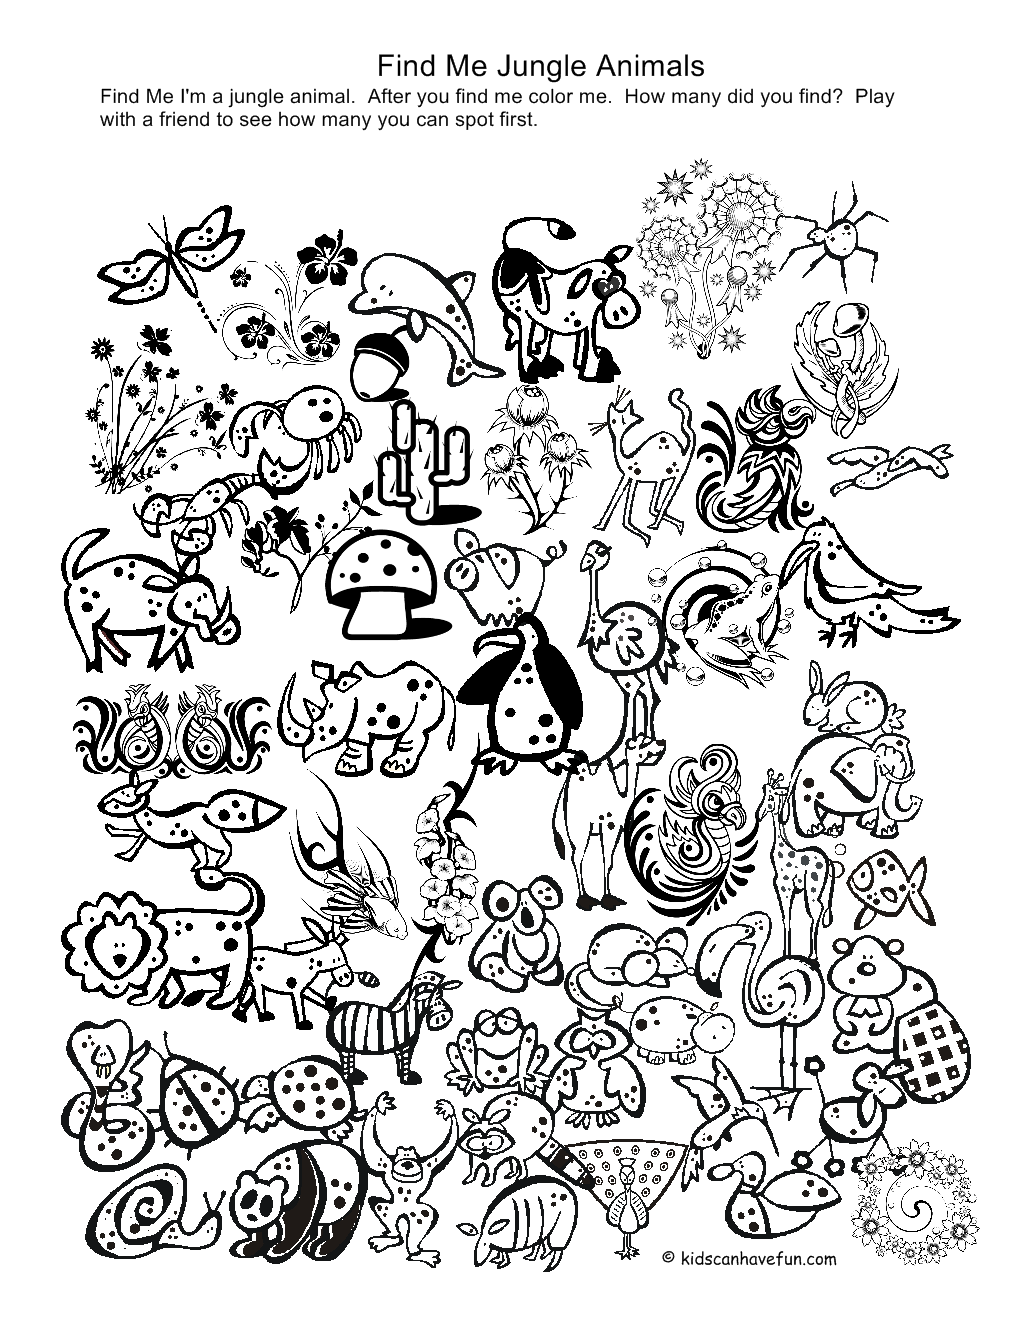 Jungle Coloring Pages (2) - Coloring Kids